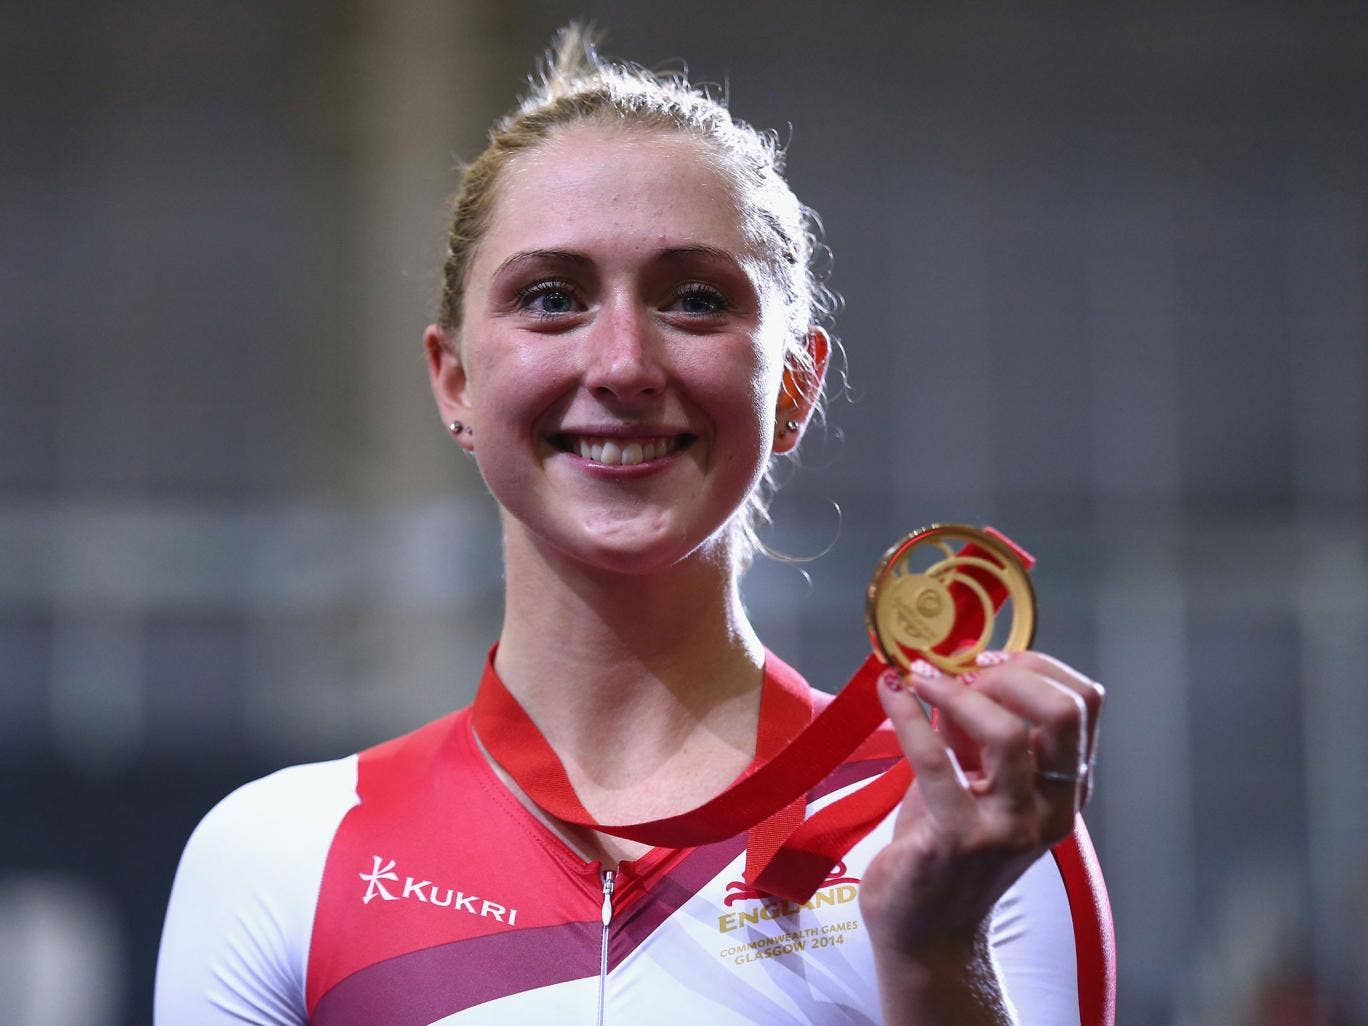 Laura Trott with her gold